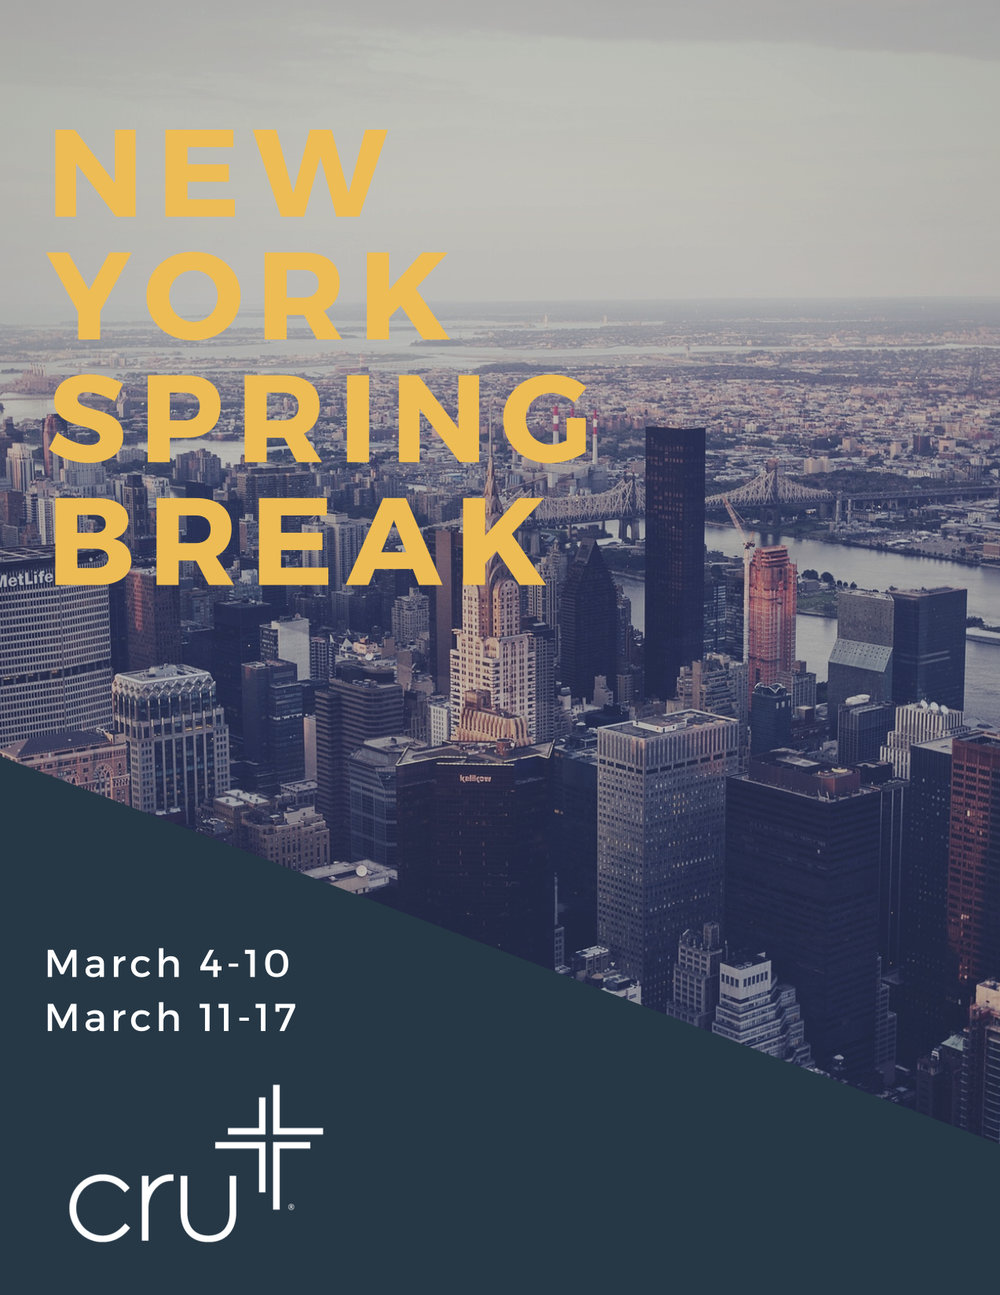 - Where: New York CityWhen: Trip 1: March 3-10, 2018 // Trip 2: March 10-17, 2018Cost: $315. This includes a Metro Card for the week, a ticket to Top of the Rock, hotel, breakfast daily, one dinner, one dessert, meeting room cost, and evangelism materials. Cost does not include airfare. We will be encouraging you to raise money via letter writing to friends/family.For more information/Registration click here:http://www.gonycsb.com/2018-dates.html